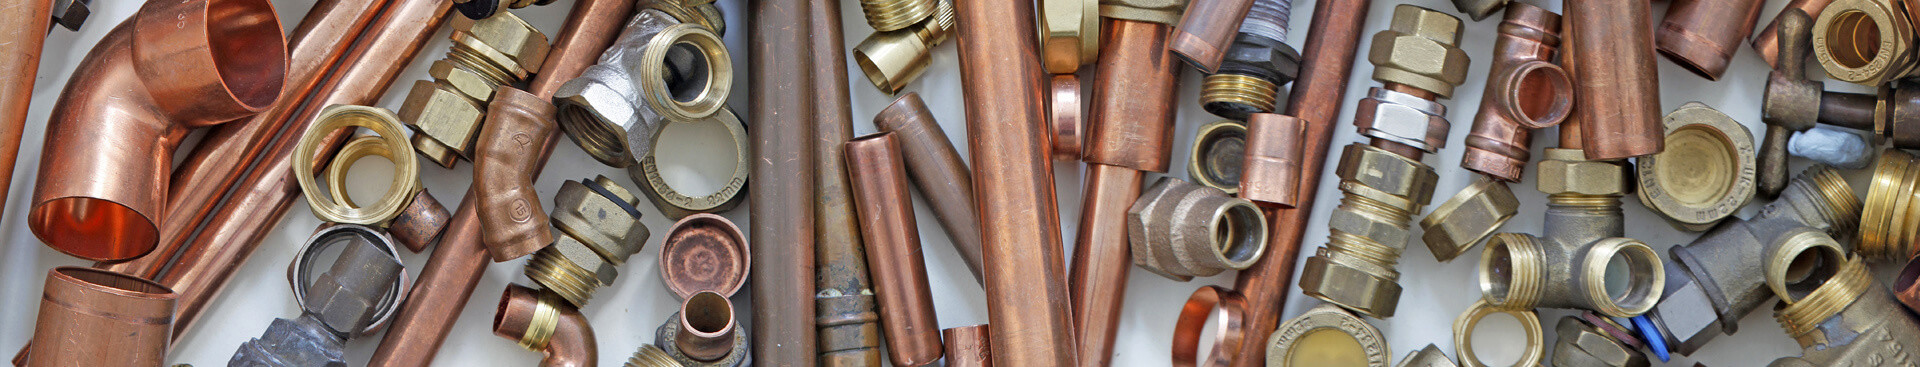 Calgary Poly B Pipe Replacement l Instant Plumbing